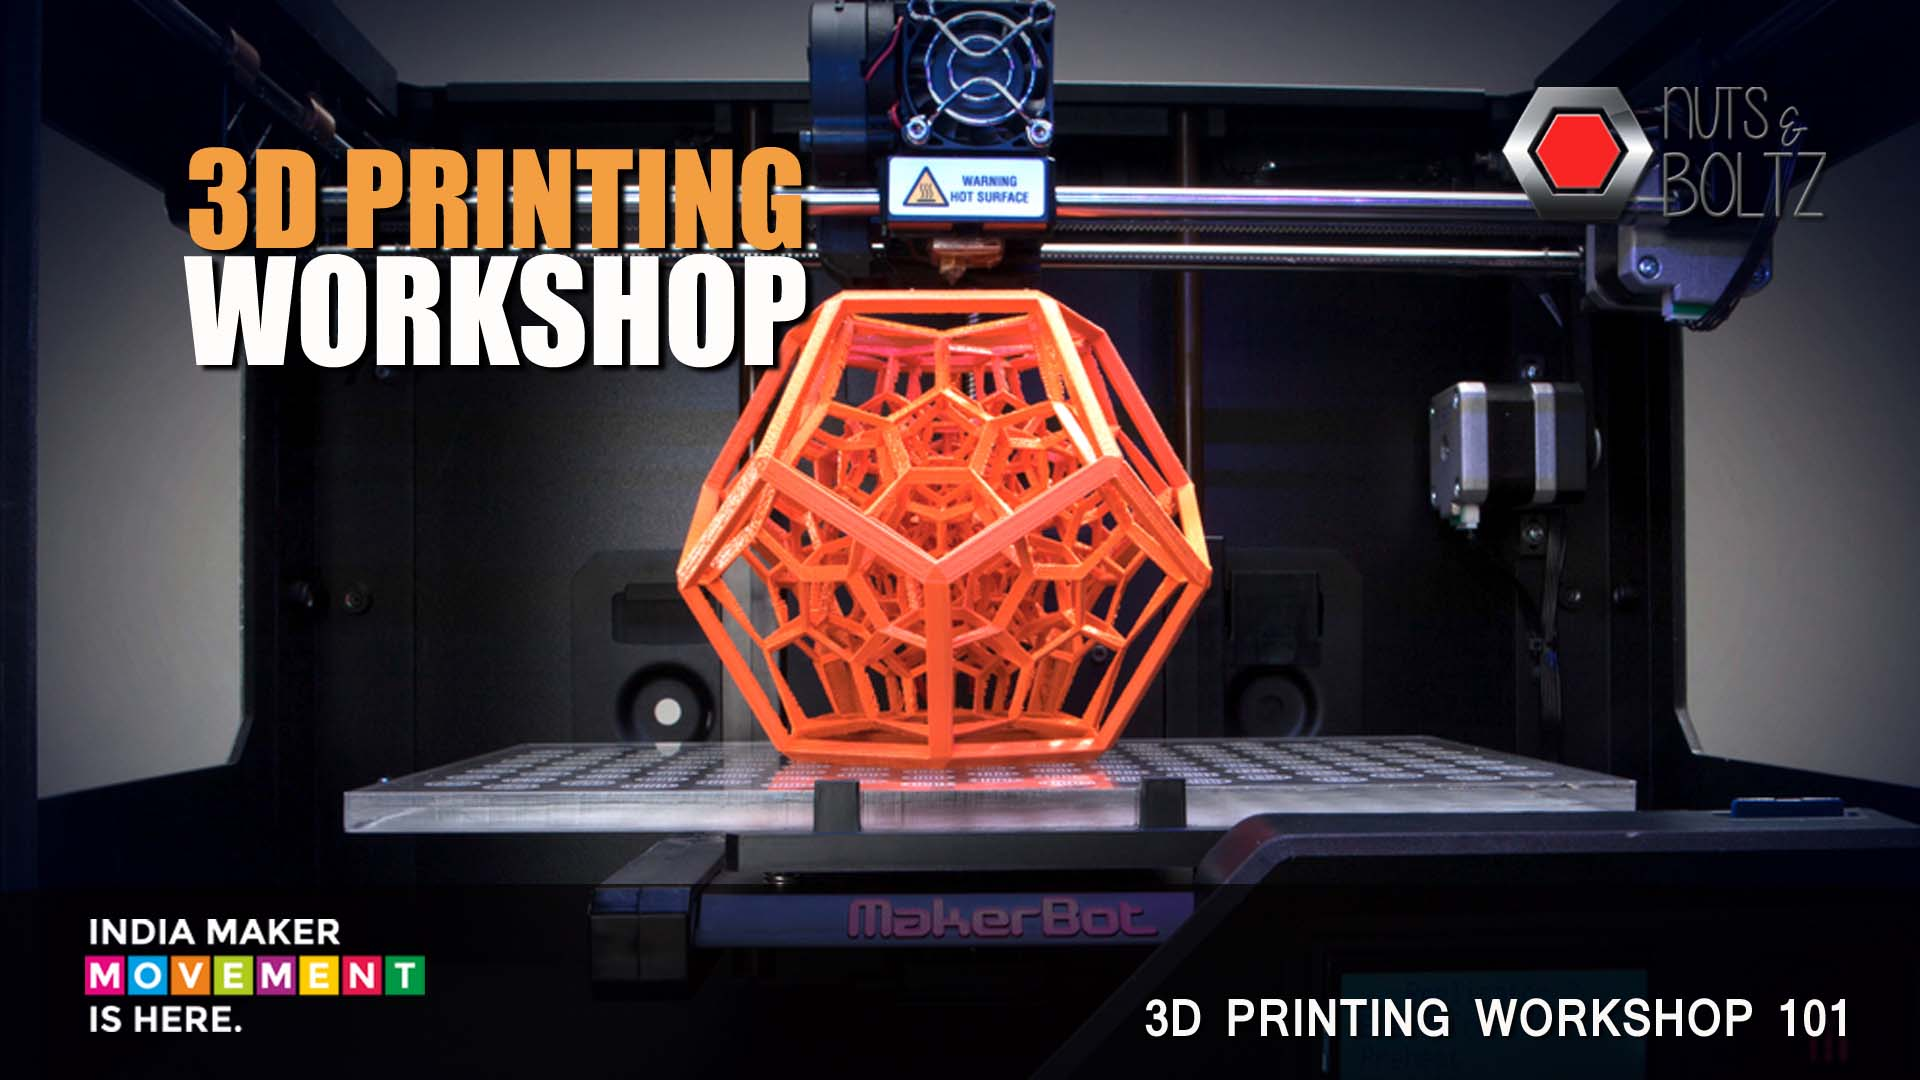 Book Online Tickets for 3D Printing Workshop, NewDelhi. 3D Printing is one of the NEXT BIG THING. In recent times, 3D-printing has come center stage, with articles on its development and importance-and its paradigm-shifting effects. Essentially, this decade-old technology has now developed to an extent wh